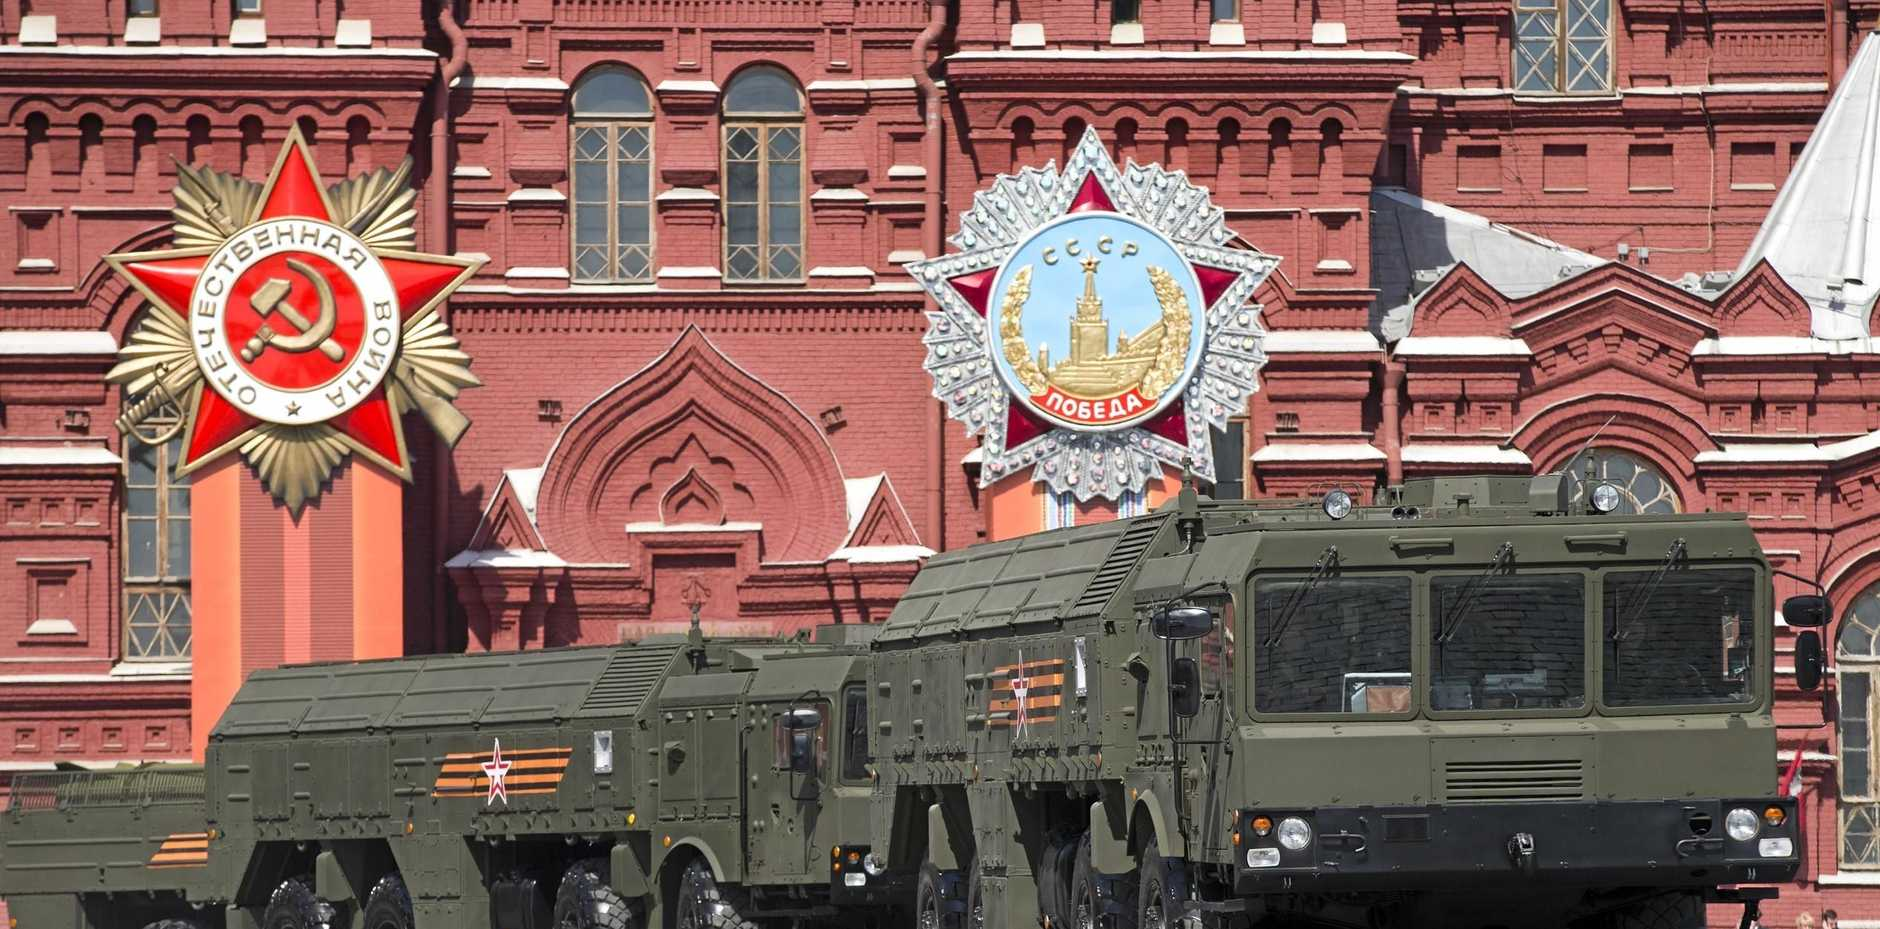 Iskander missile launchers are driven during the 2015 Victory Parade marking the 70th anniversary of the defeat of the Nazis in World War II, in Red Square, Moscow. The launchers are capable of carrying nuclear warheads.